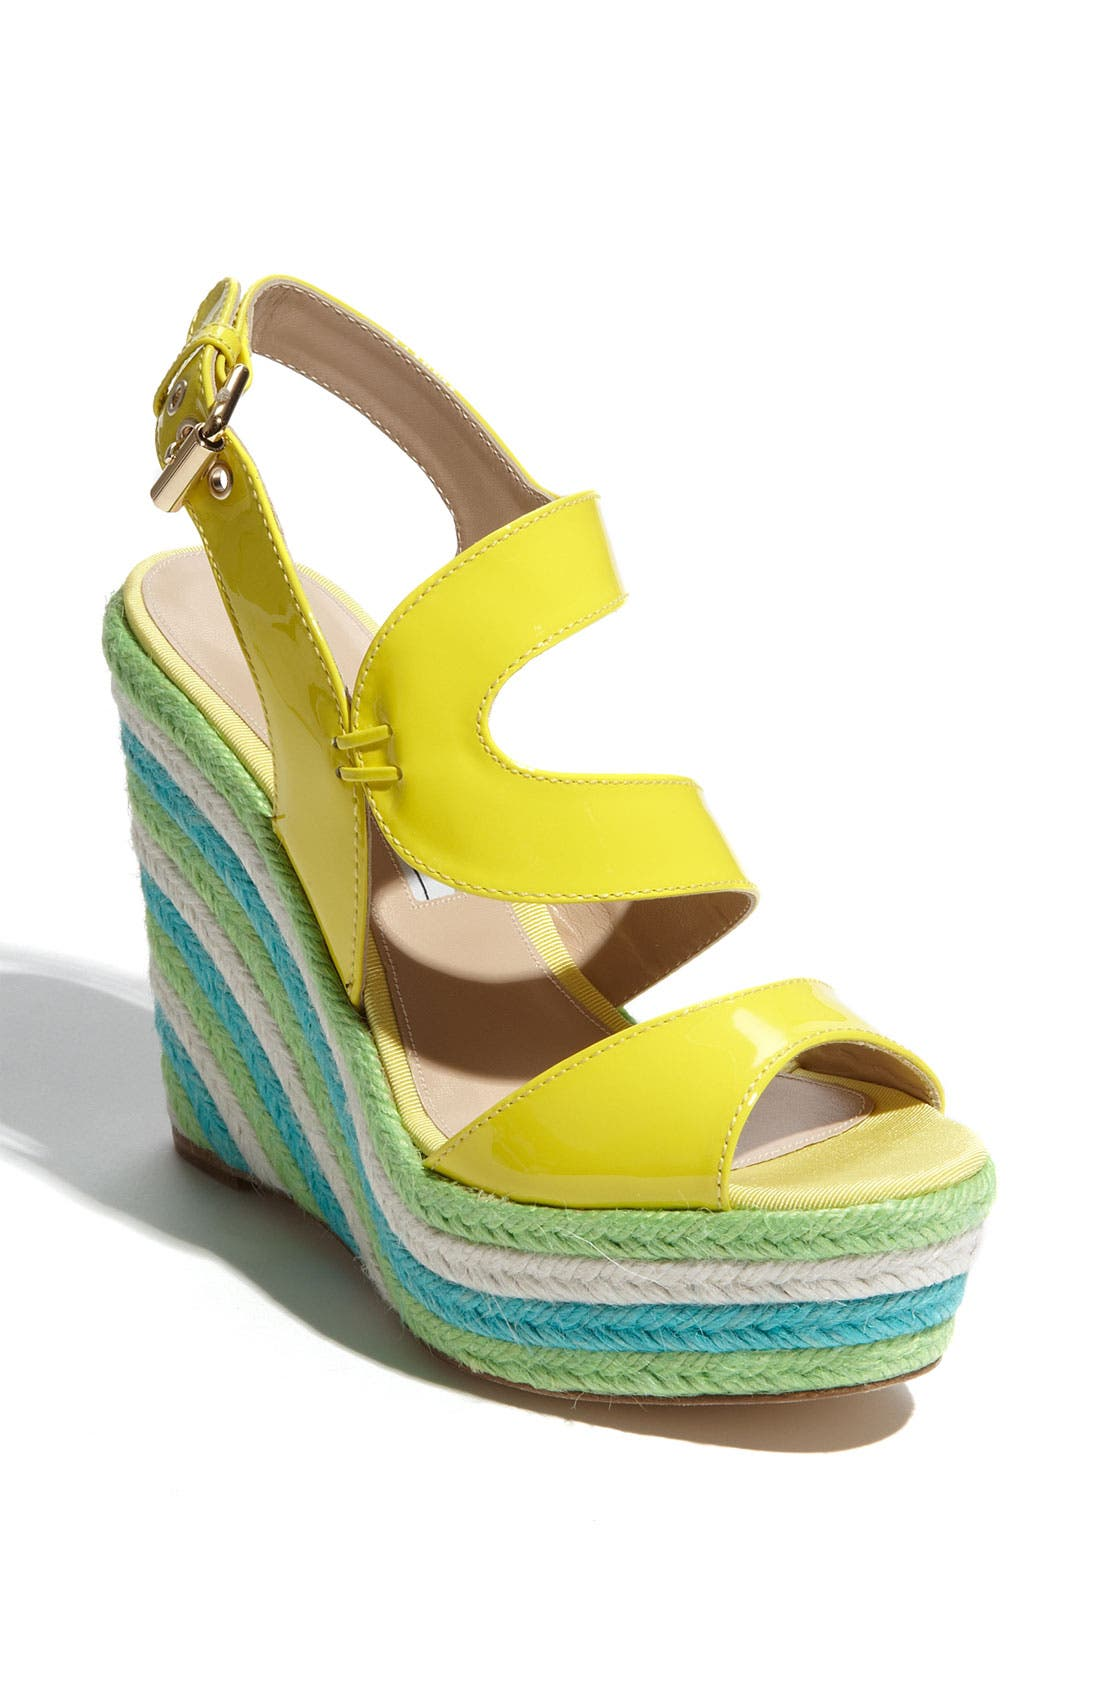 Alternate Image 1 Selected - Brian Atwood 'Ariane' Espadrille Wedge Sandal